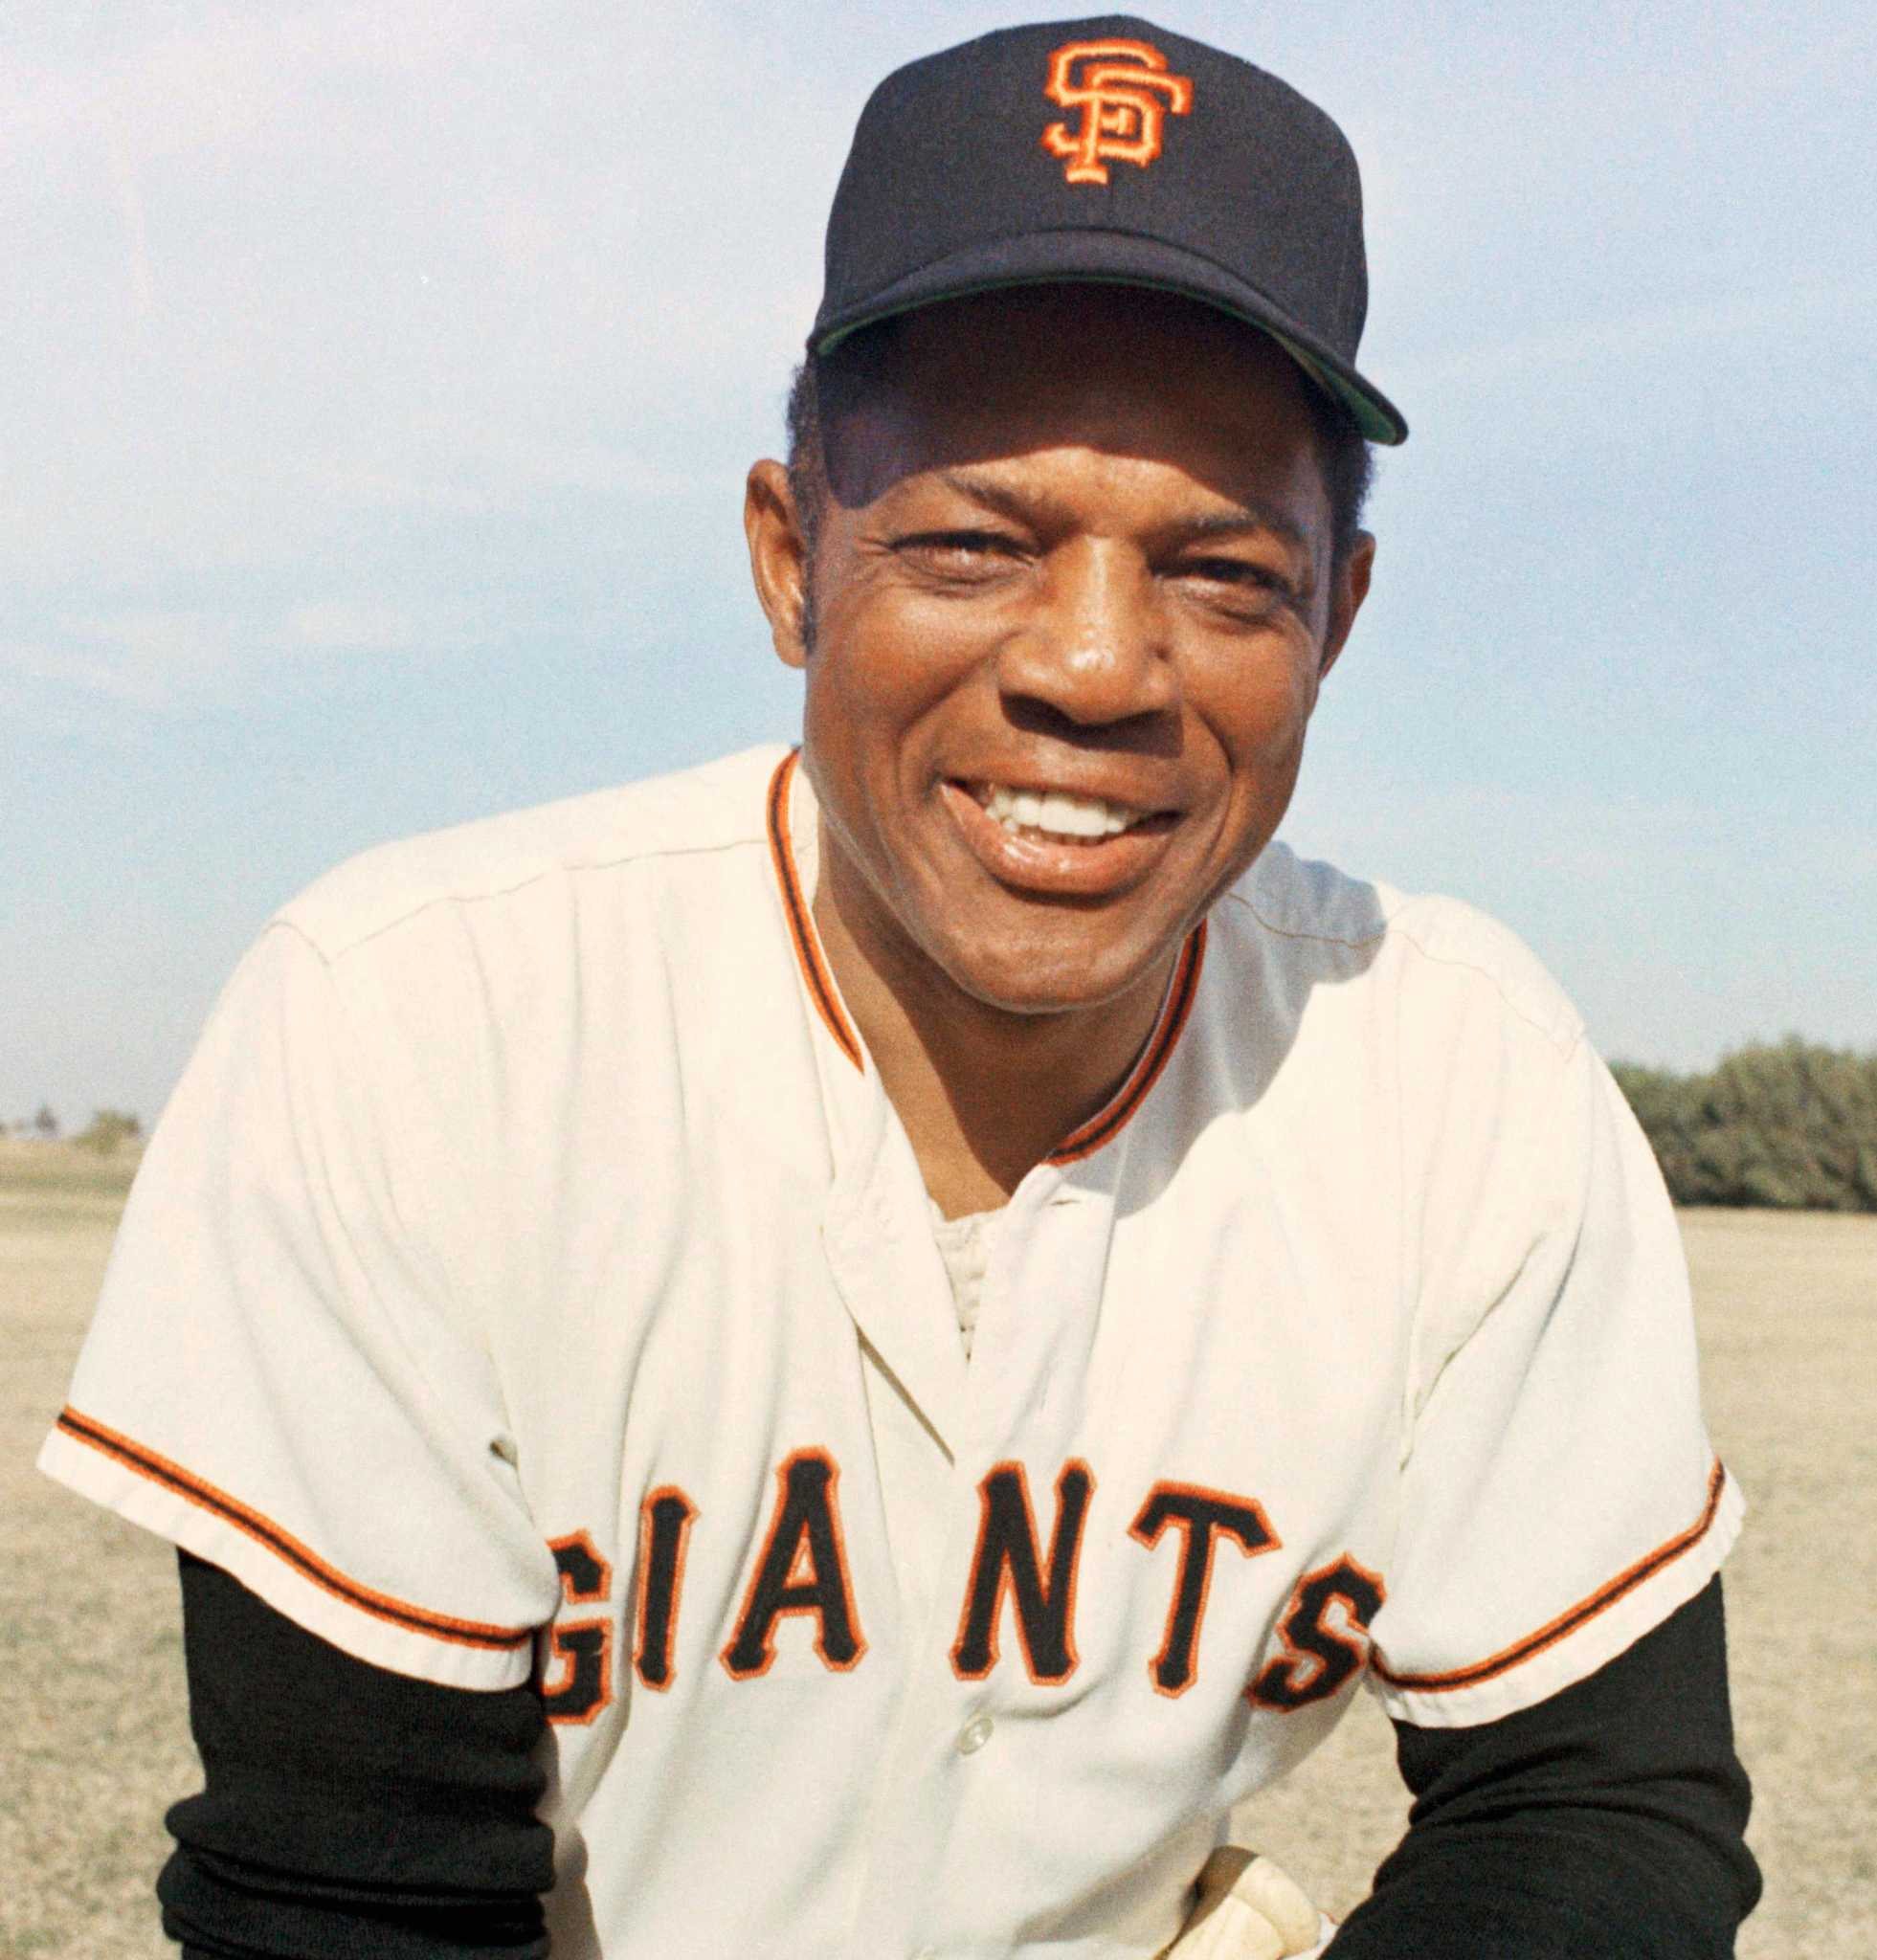 Willie Mays '24' book excerpt: The Story of the Absurdity of Racism